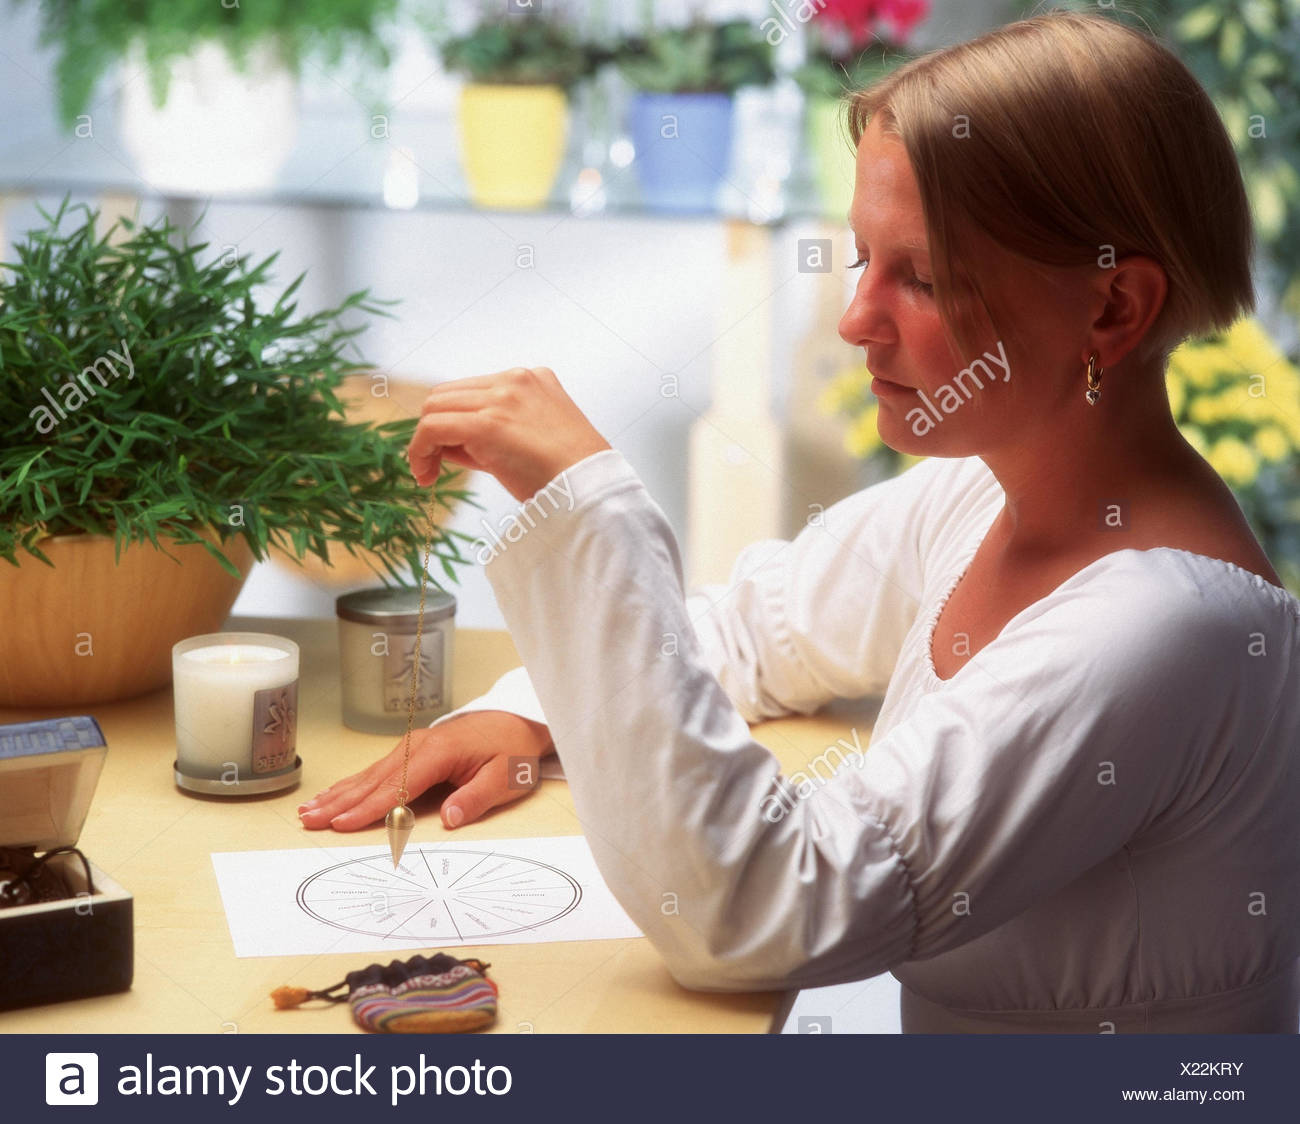 Esotericism, woman, auspendeln, herbs, occultism, spiritualism, occultism, oscillate, swing, parapsychology, pendulum deviation, pendulum, siderisches, herbs, motion, hands, inside - Stock Image